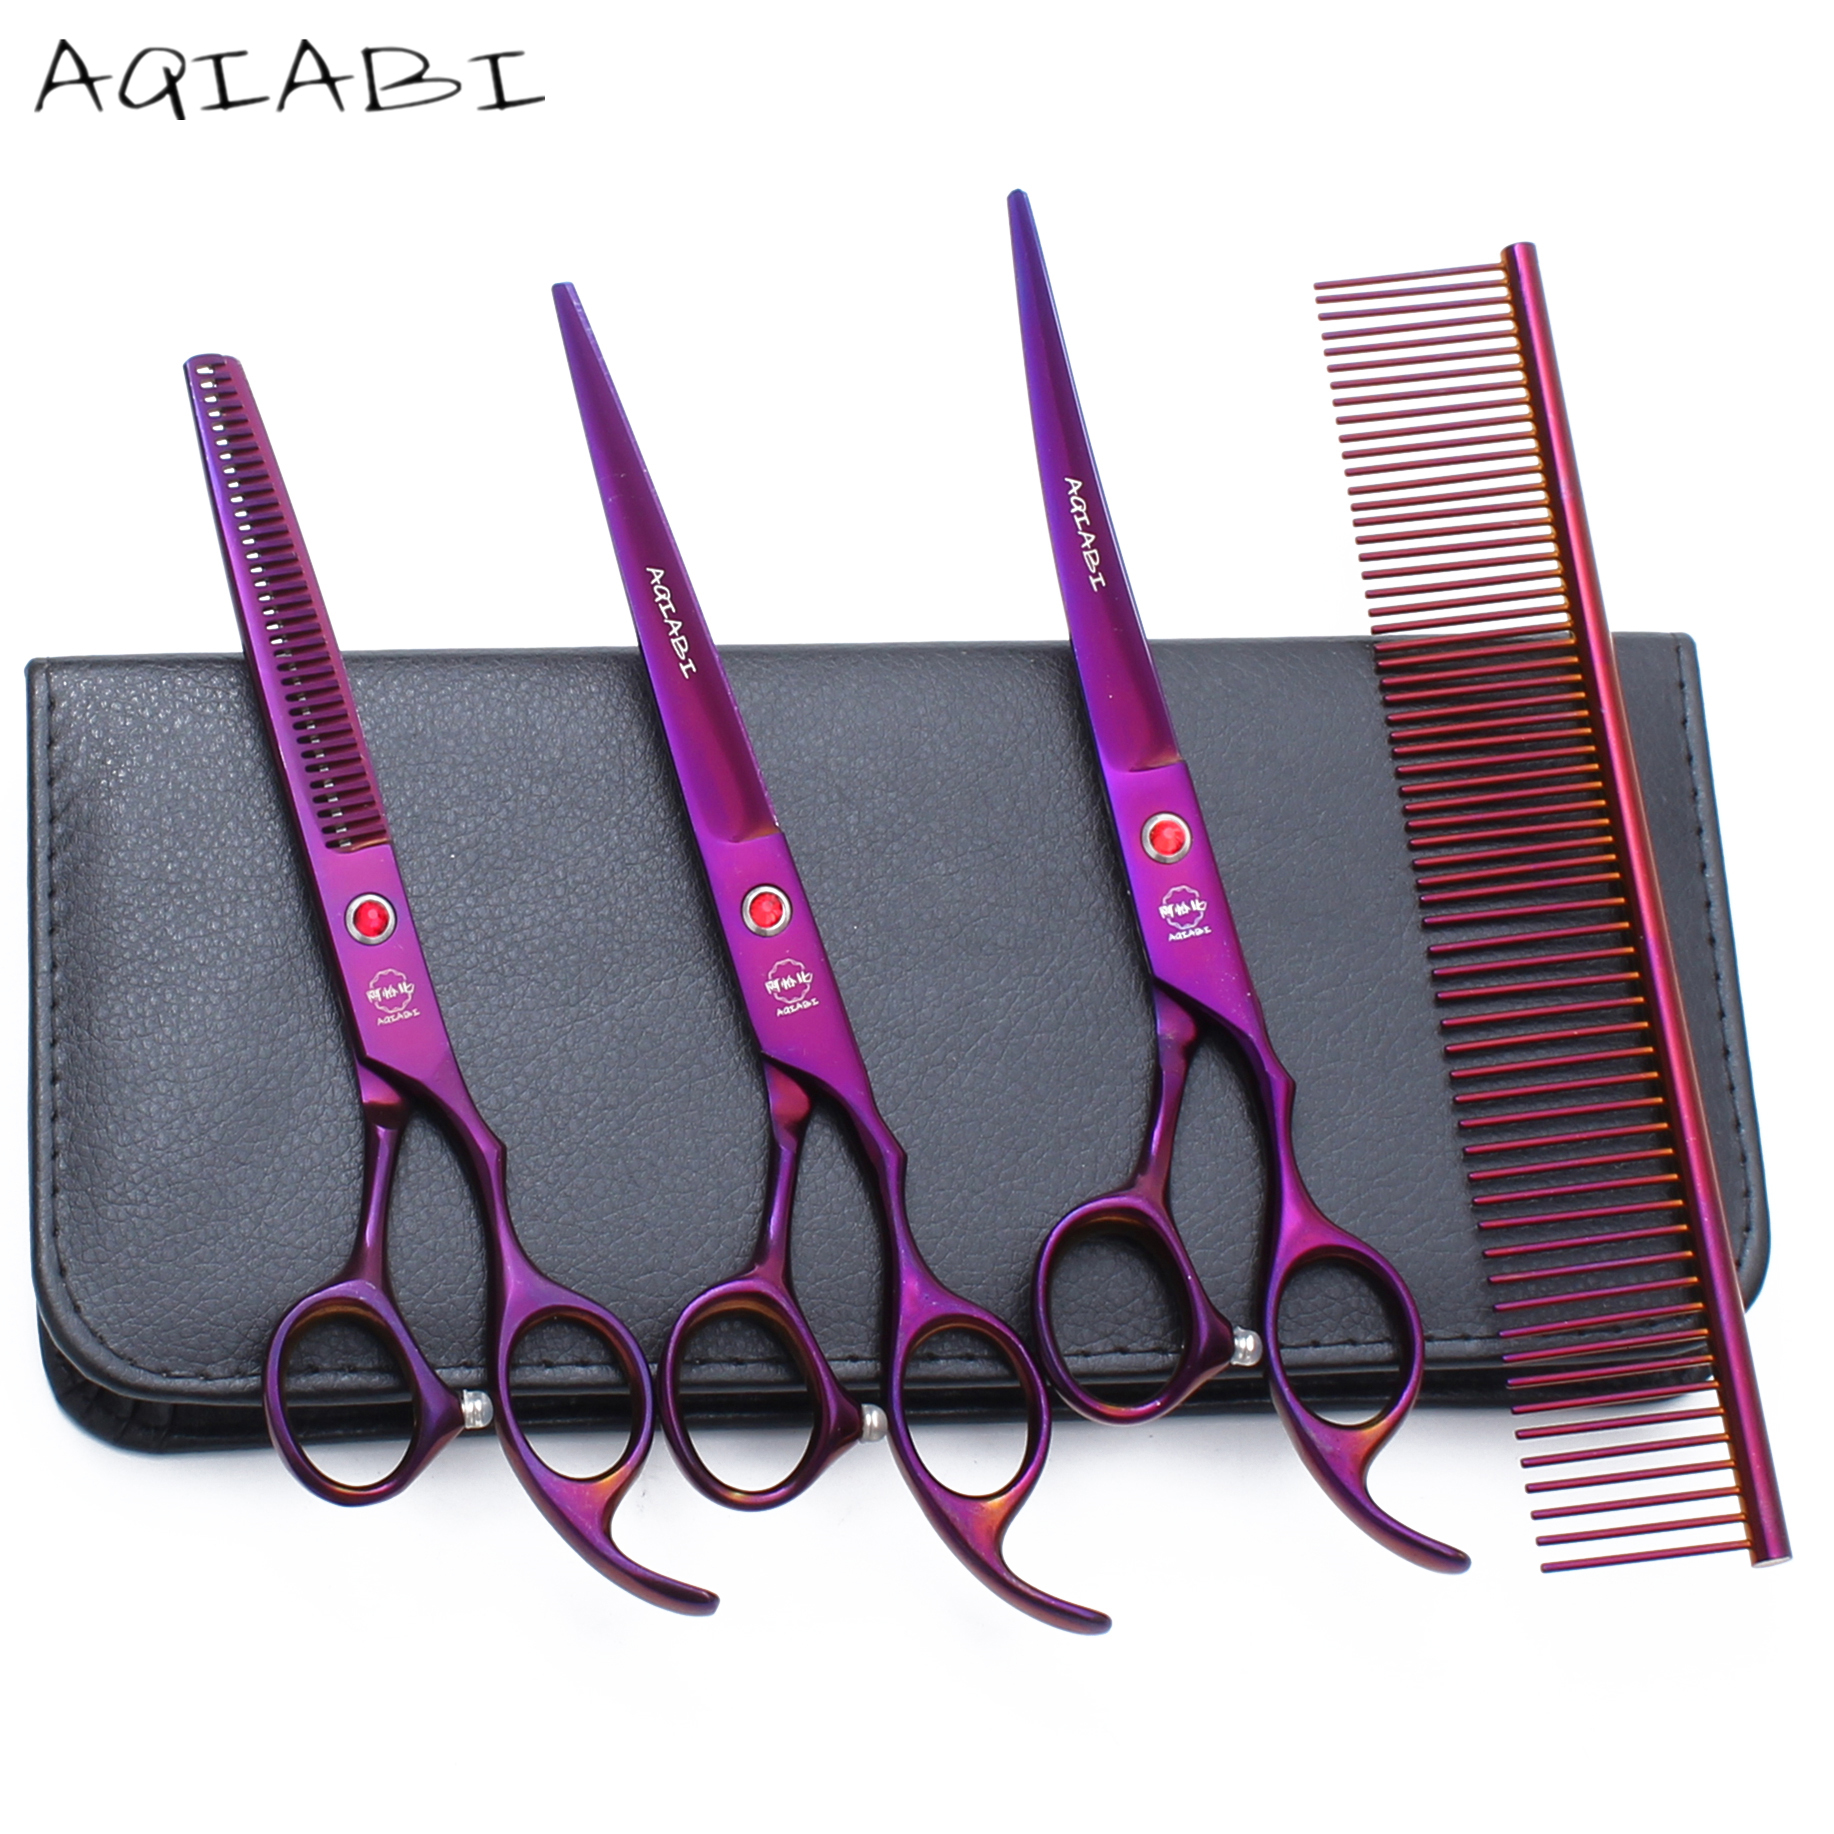 A3003 7 19.5cm Hand Made Professional Grooming Scissors Pet Shop & Home Dogs Cats Animals Hair Shears Haircut Scissors SuitA3003 7 19.5cm Hand Made Professional Grooming Scissors Pet Shop & Home Dogs Cats Animals Hair Shears Haircut Scissors Suit